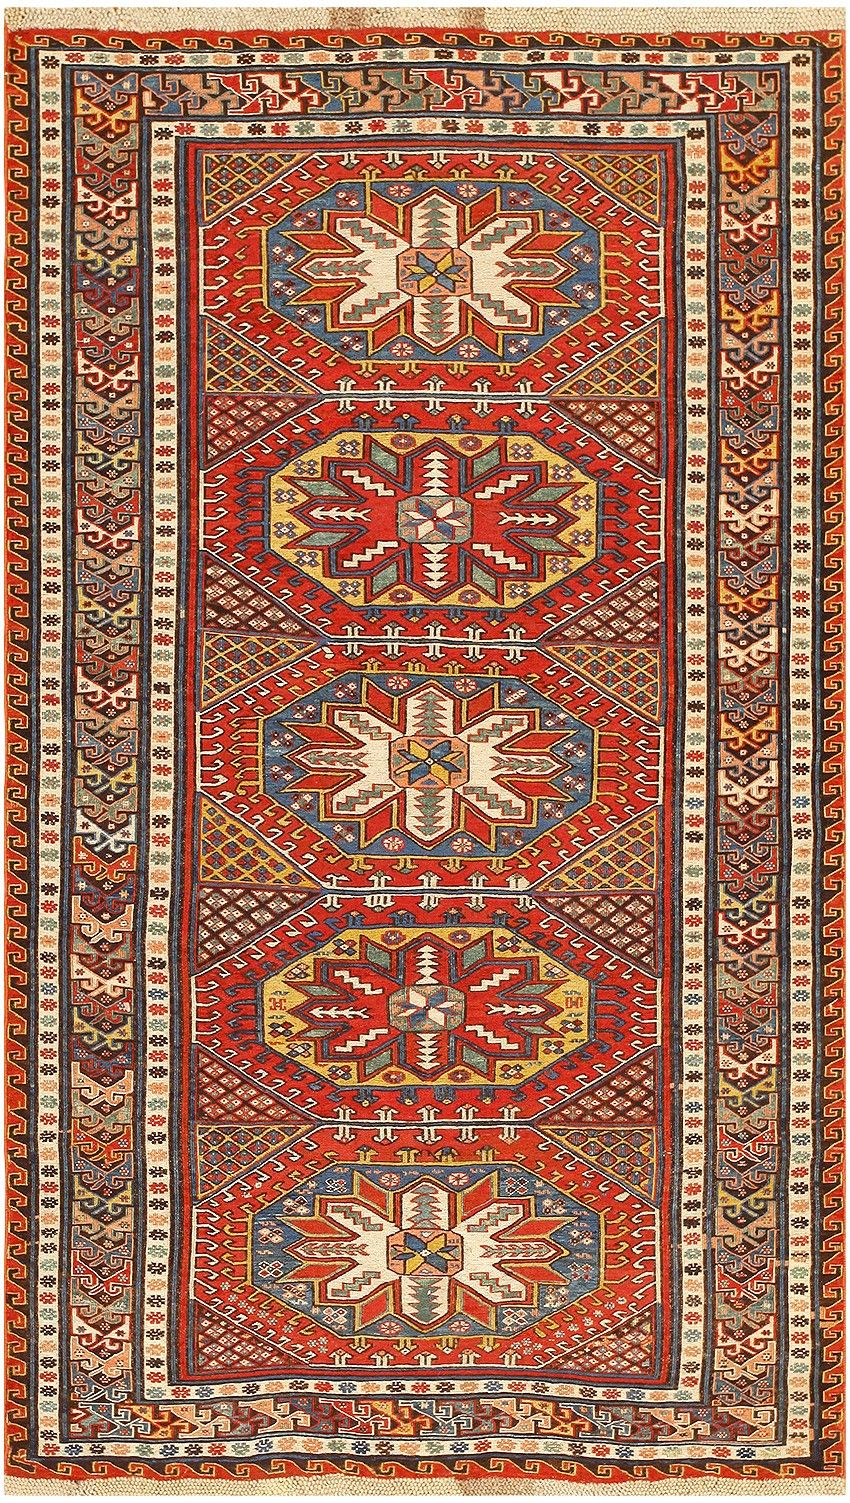 Antique Caucasian Soumak Rug 47468 Main Image By Nazmiyal